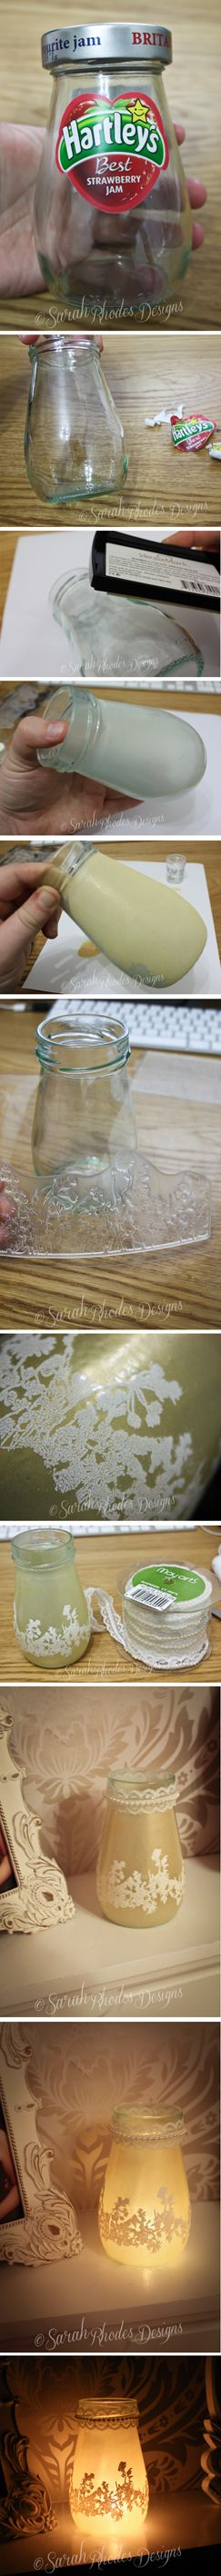 Recycled Jam Jar Tutorial - Sarah Rhodes Designs for Wow embossing powder